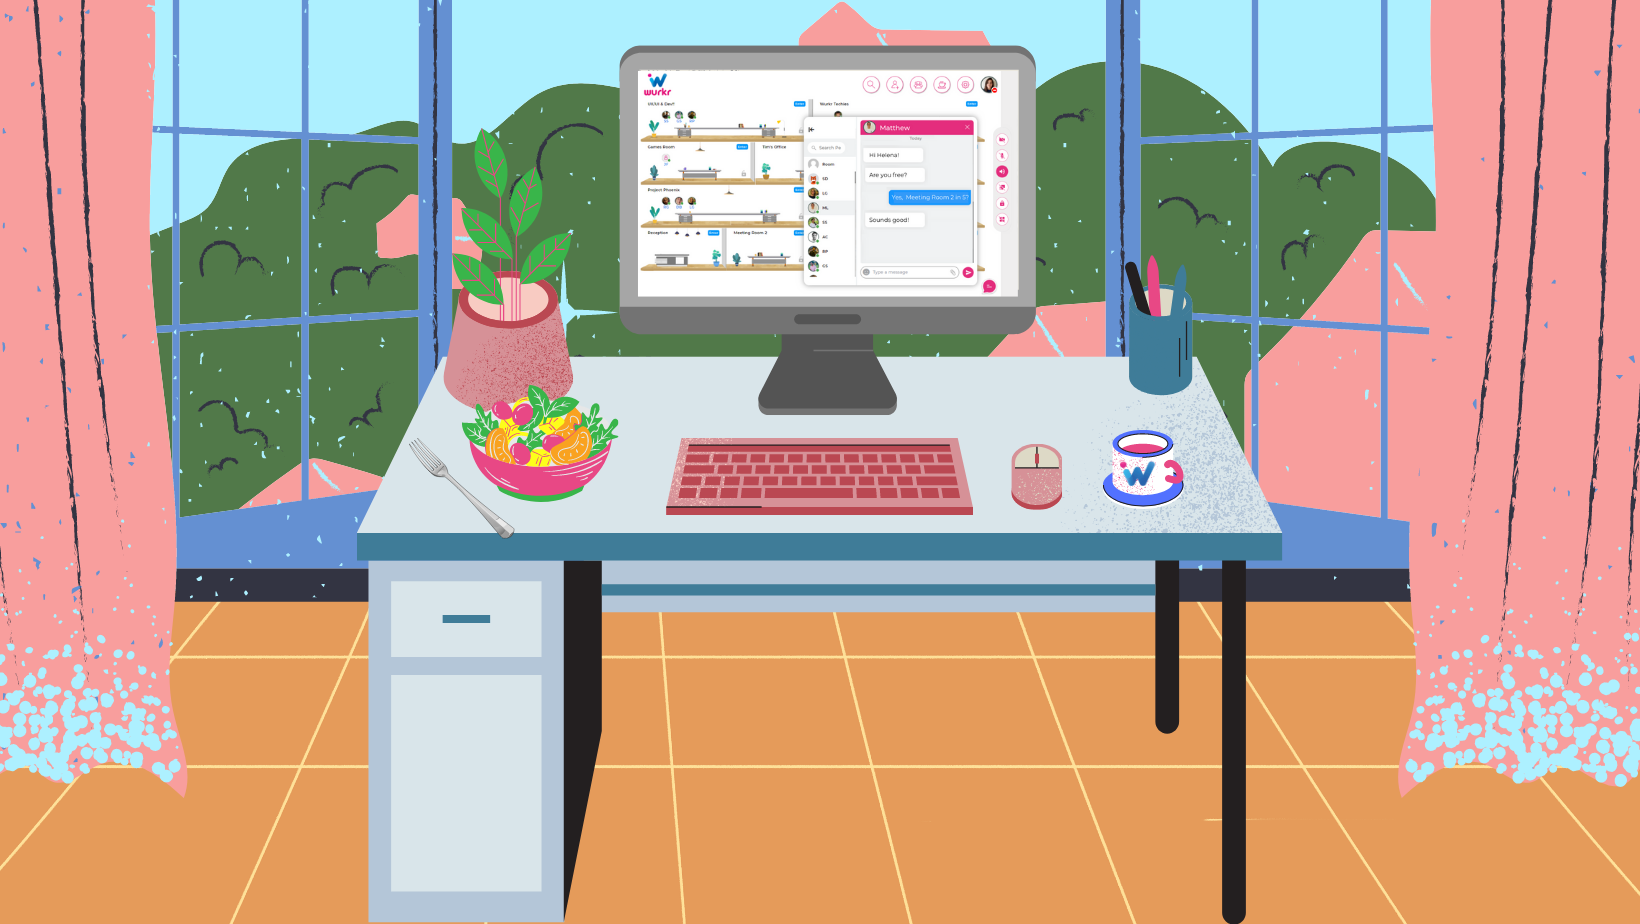 A remote worker's WFH home office set up that reduces carbon emissions and helps to solve the carbon crisis by tackling waste and planting trees by using a virtual office like Wurkr and supporting the planting of trees with their Partner One Tree Planted.